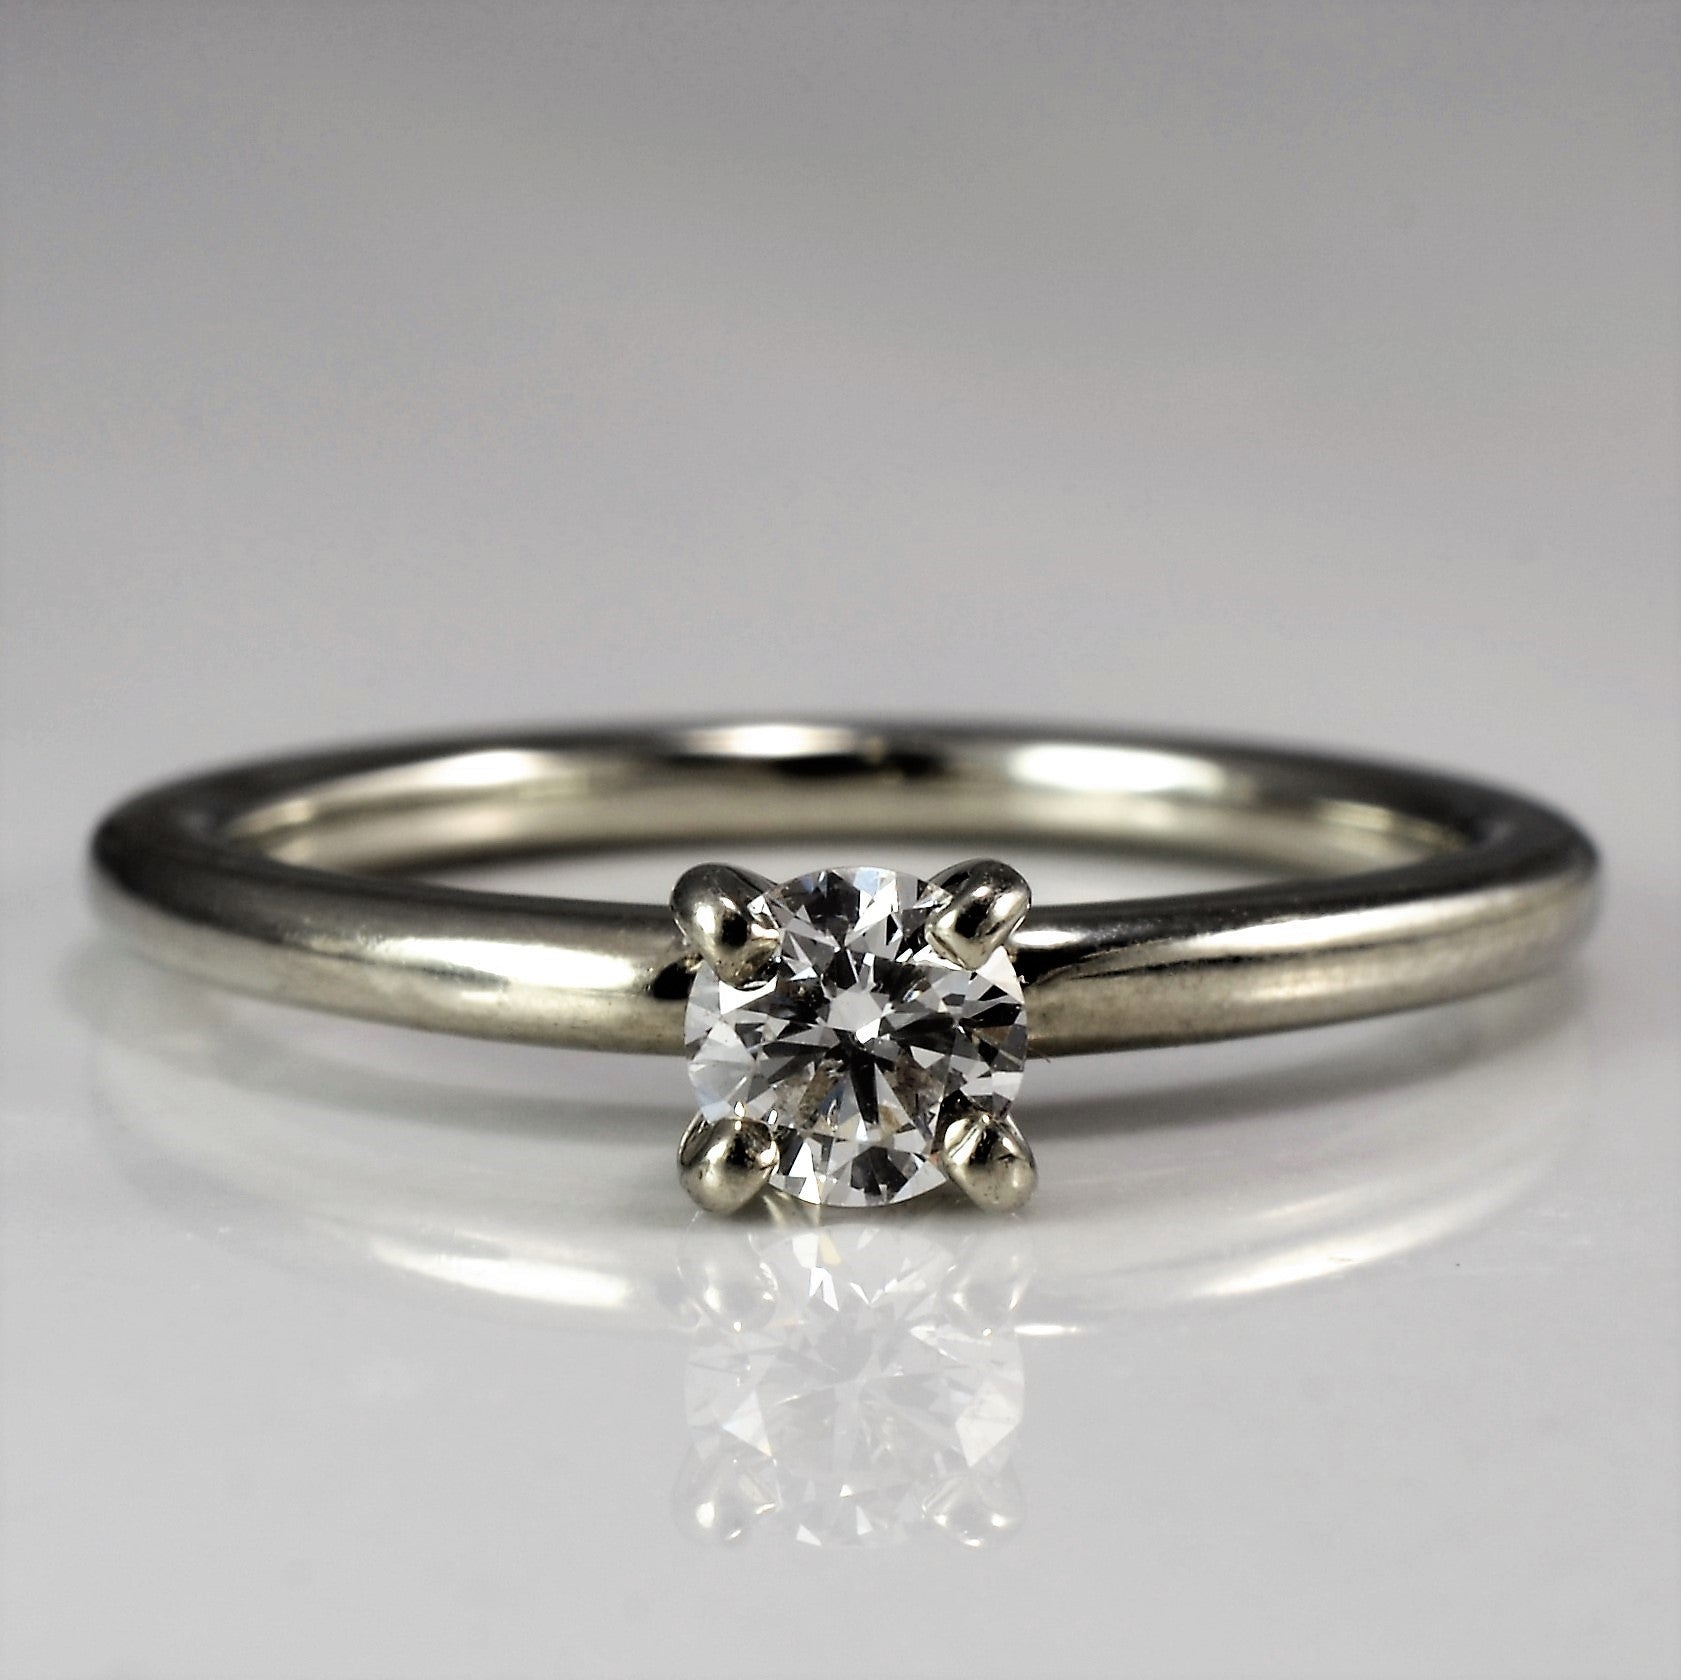 Simple White Gold Solitaire Diamond Ring | 0.19 ct, SZ 4.5 |